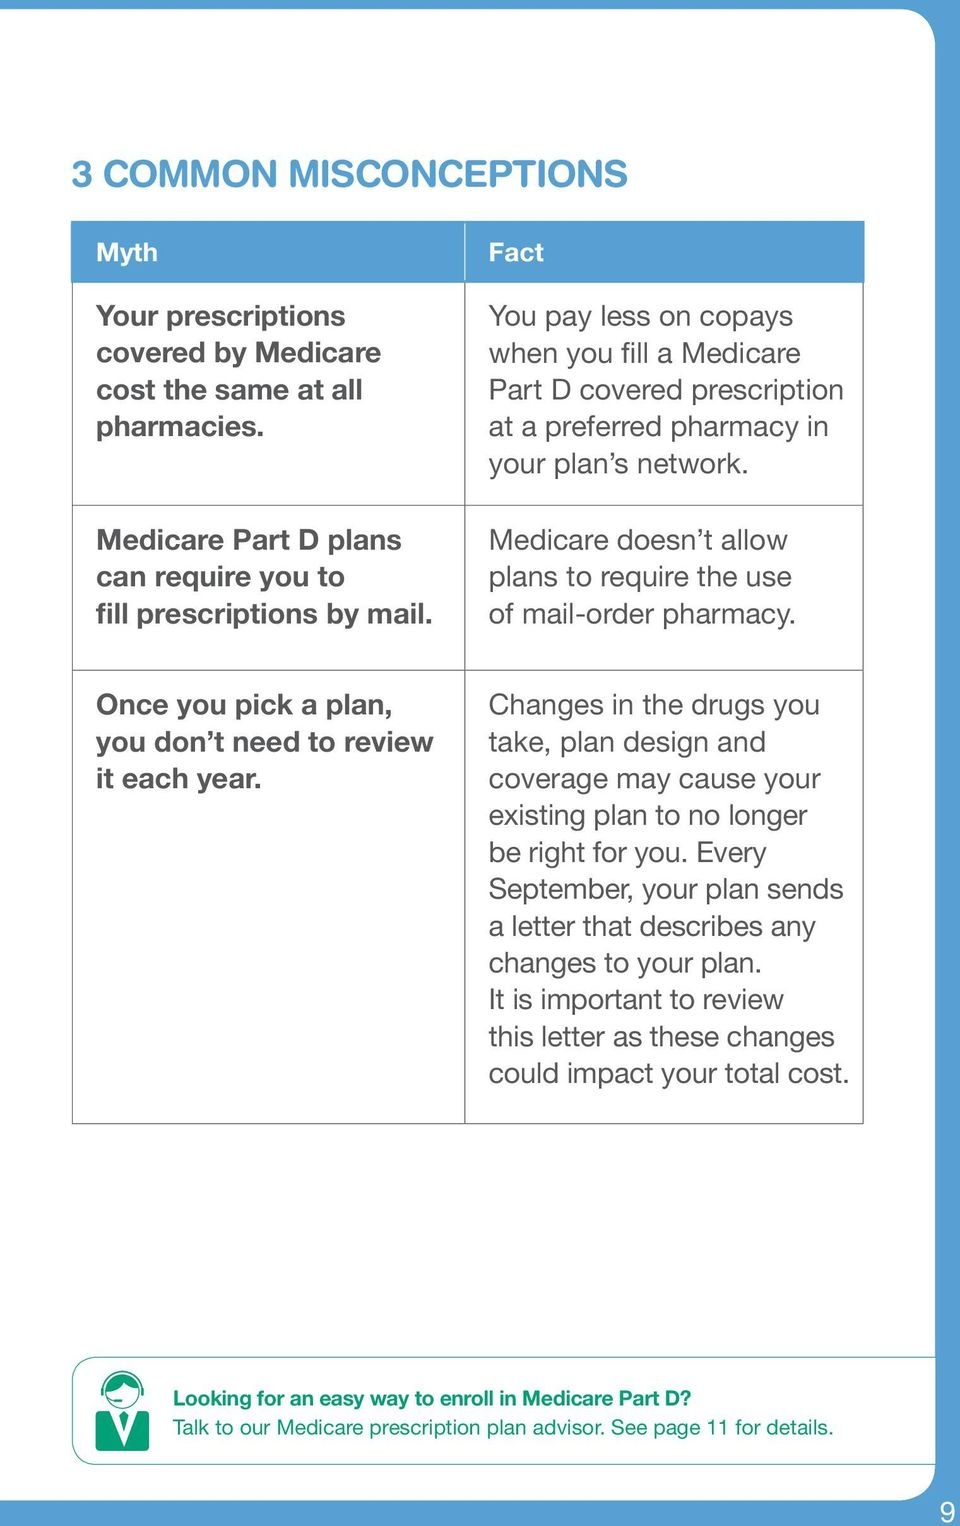 Once you pick a plan, you don t need to review it each year. Changes in the drugs you take, plan design and coverage may cause your existing plan to no longer be right for you.